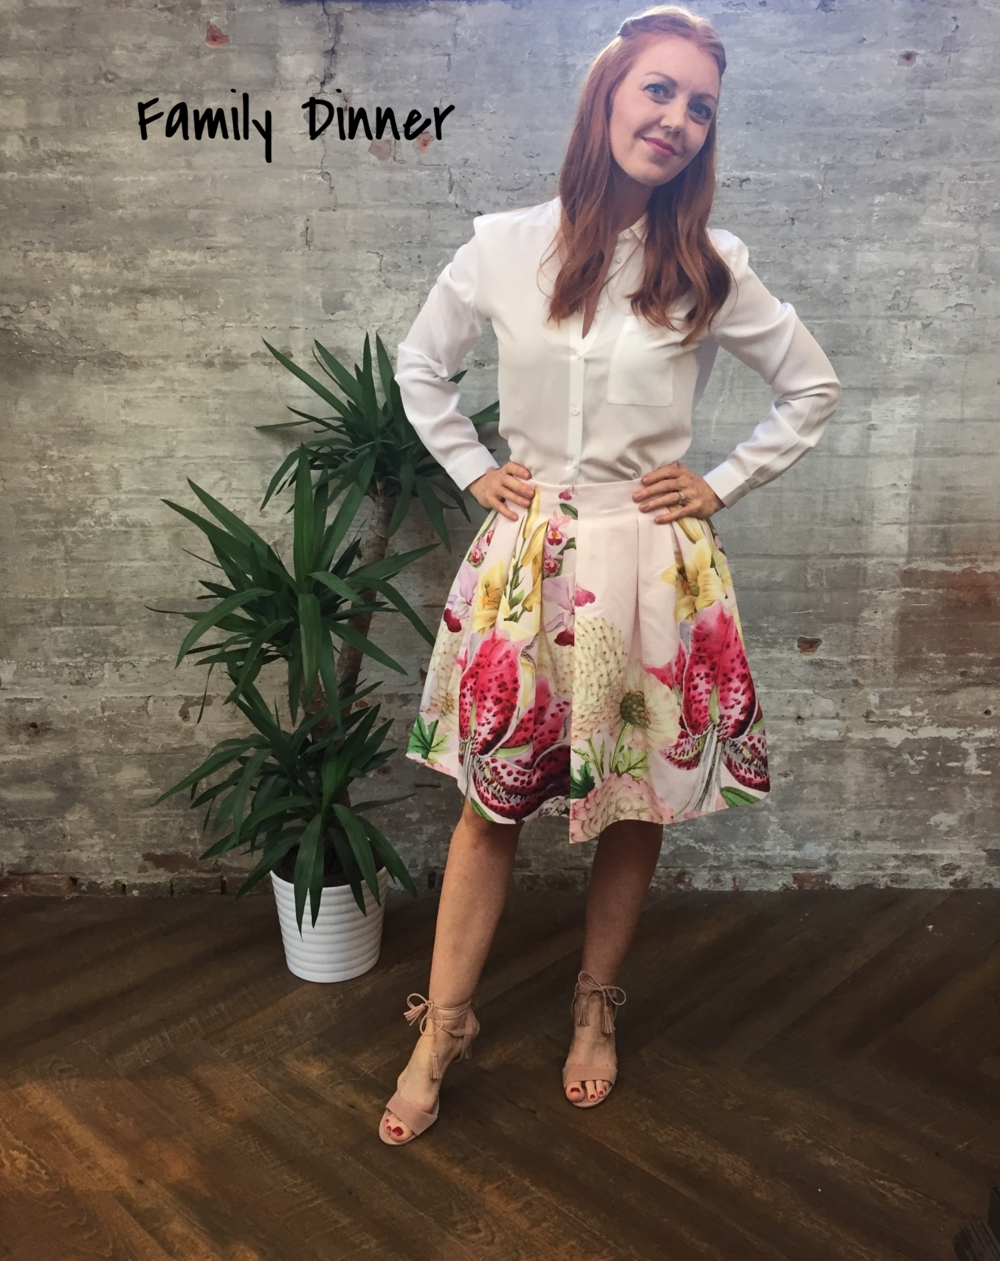 Family dinners can range from fun to extremely nerve racking, especially if you're meeting his family for the first time. Dress conservatively in a simple white blouse and a printed party skirt that will accommodate a hearty meal and a potluck setting of desserts. American Vintage Blouse $220 Ted Baker Skirt $289